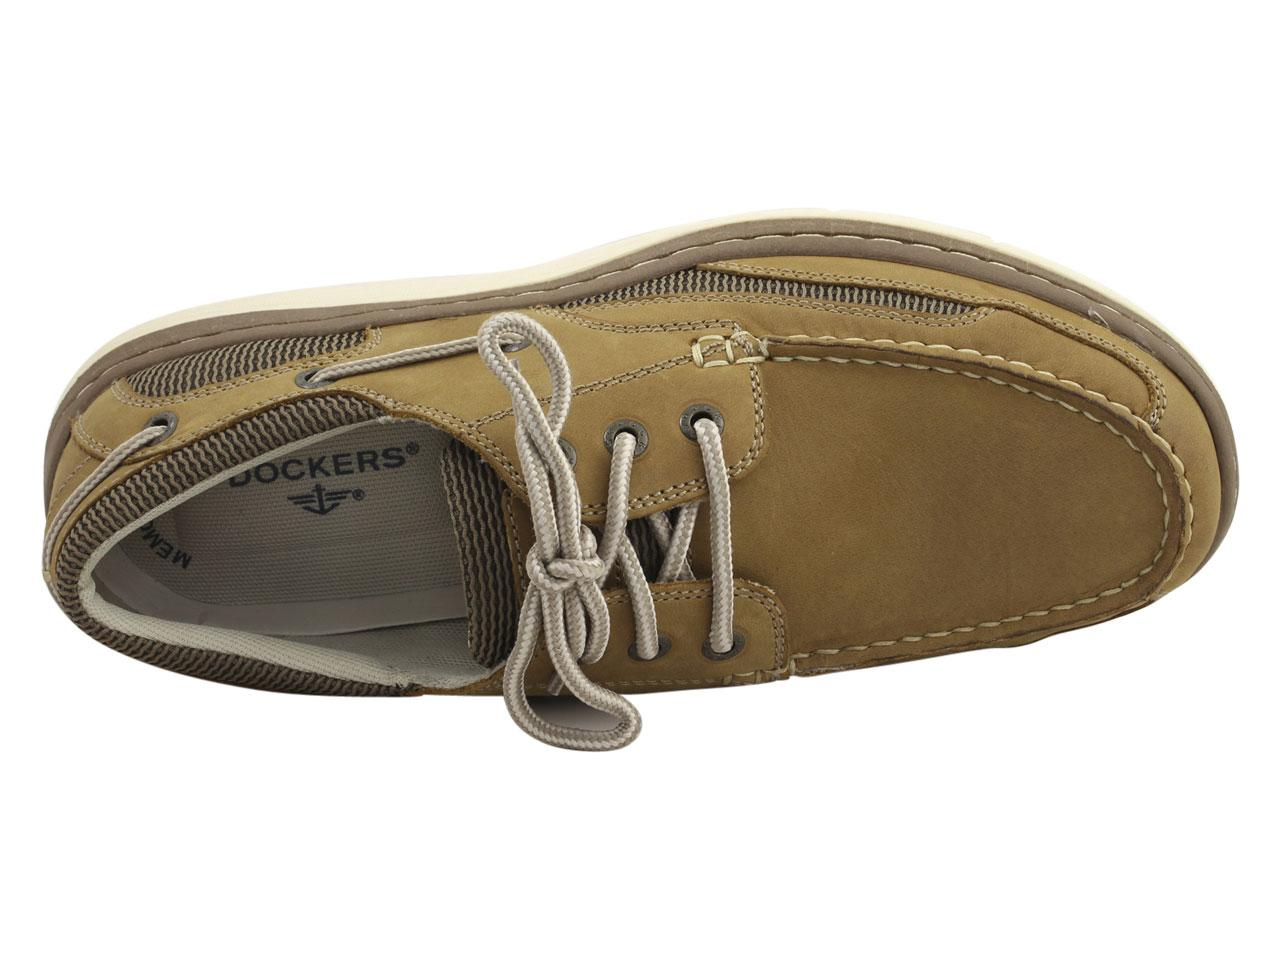 free delivery classic style clearance sale Dockers Men's Lakeport Memory Foam Loafers Boat Shoes